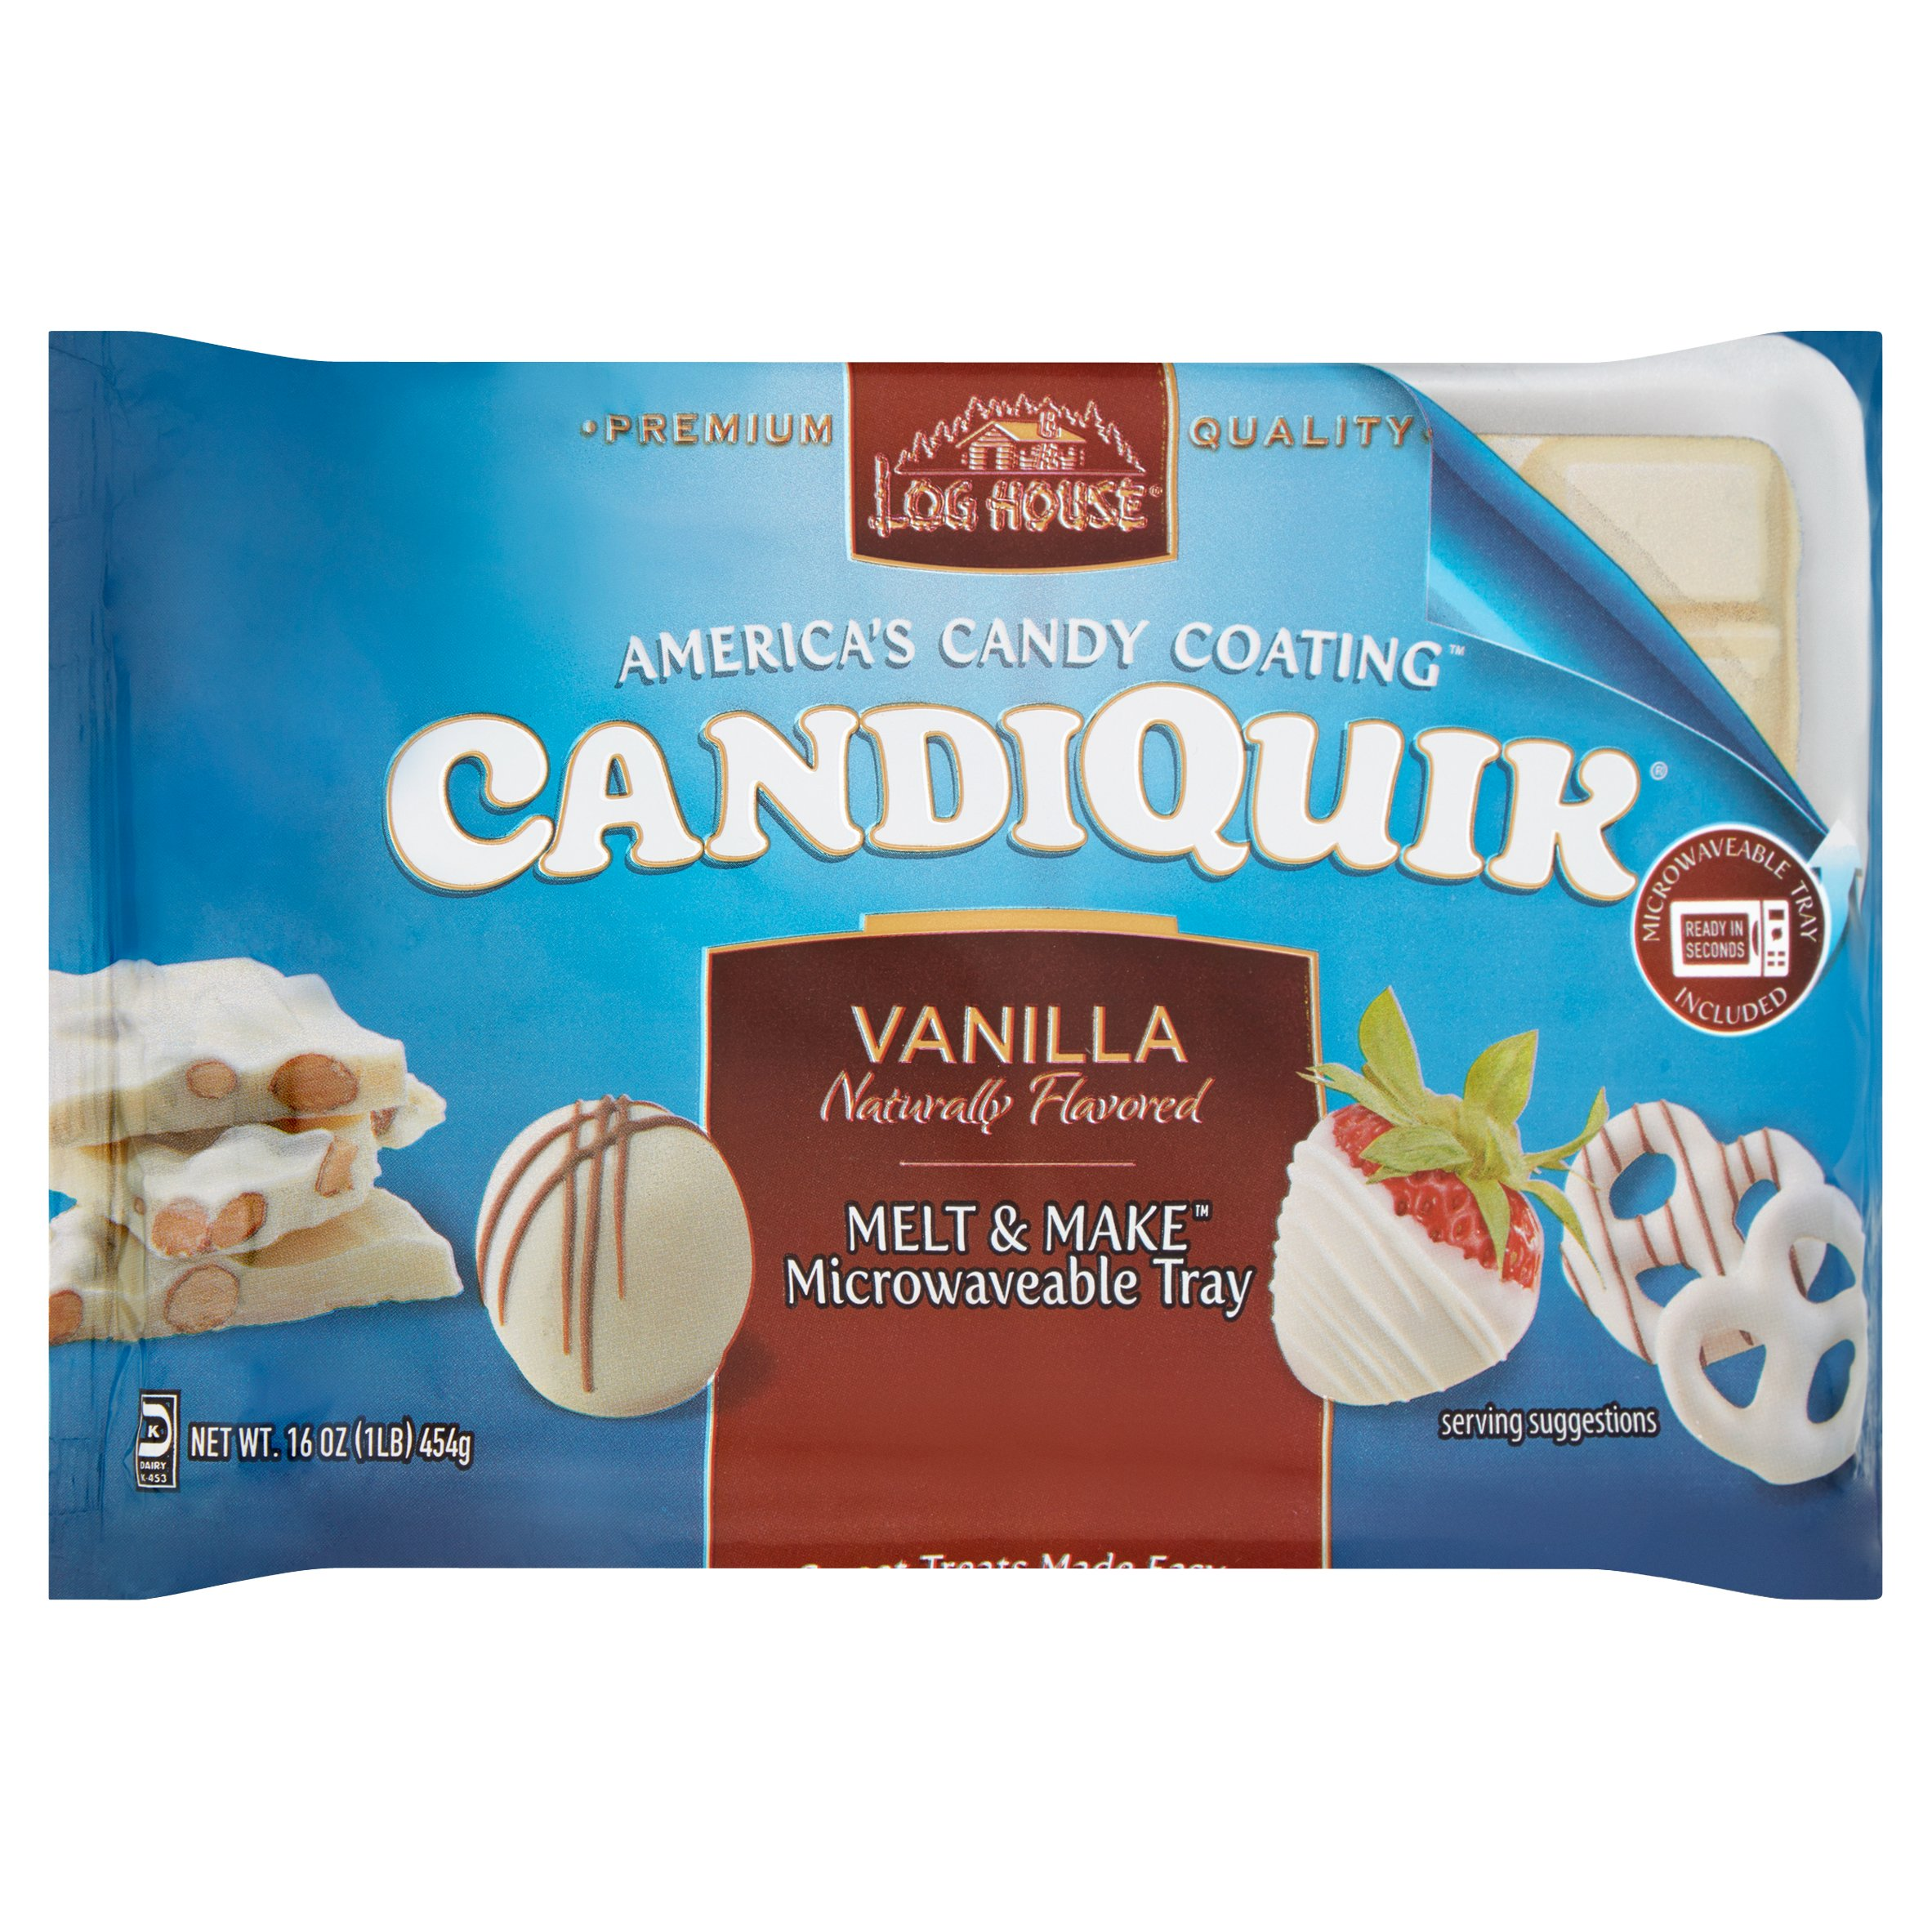 Log House Vanilla CandiQuik 16 oz